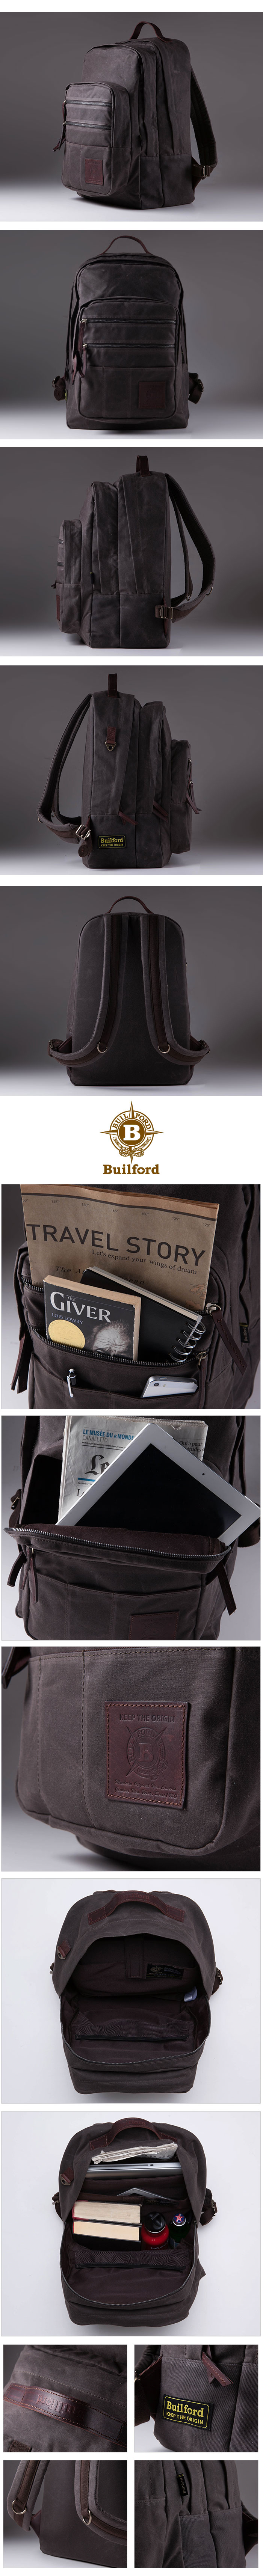 Builford discovery rucksac chcolate